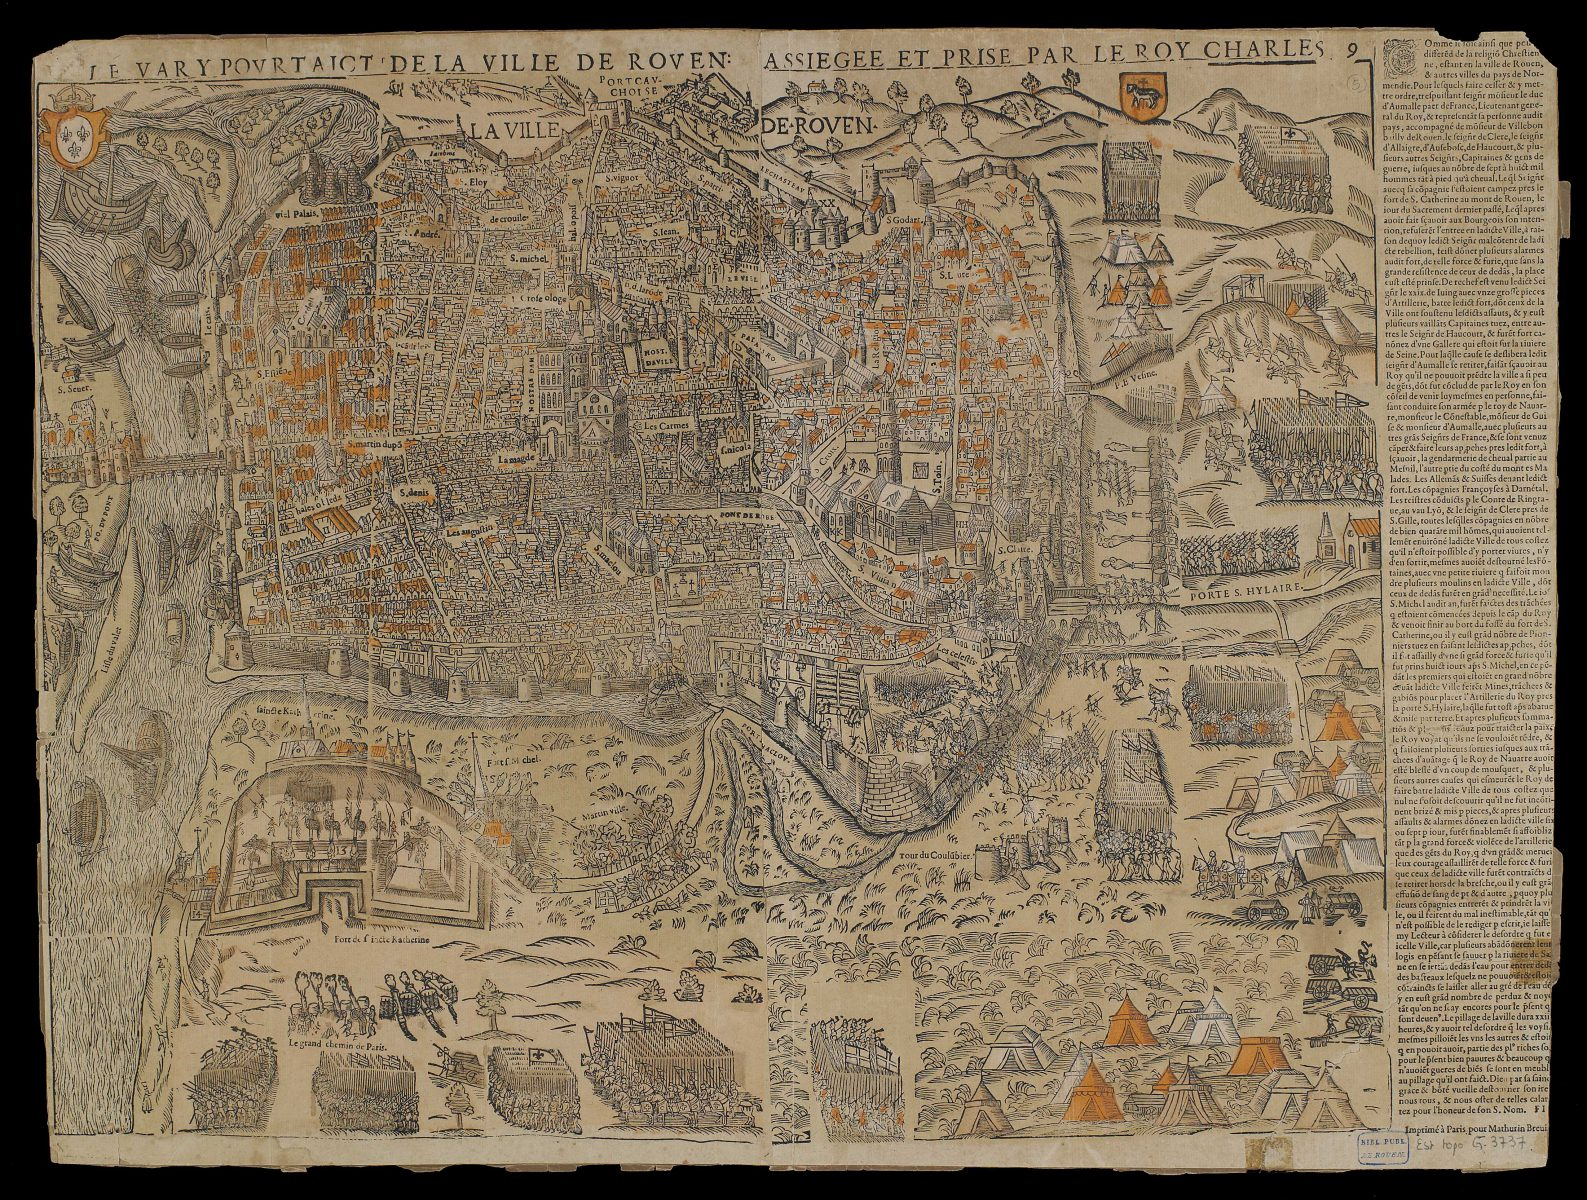 Map of Rouen besieged and taken by Charles IX